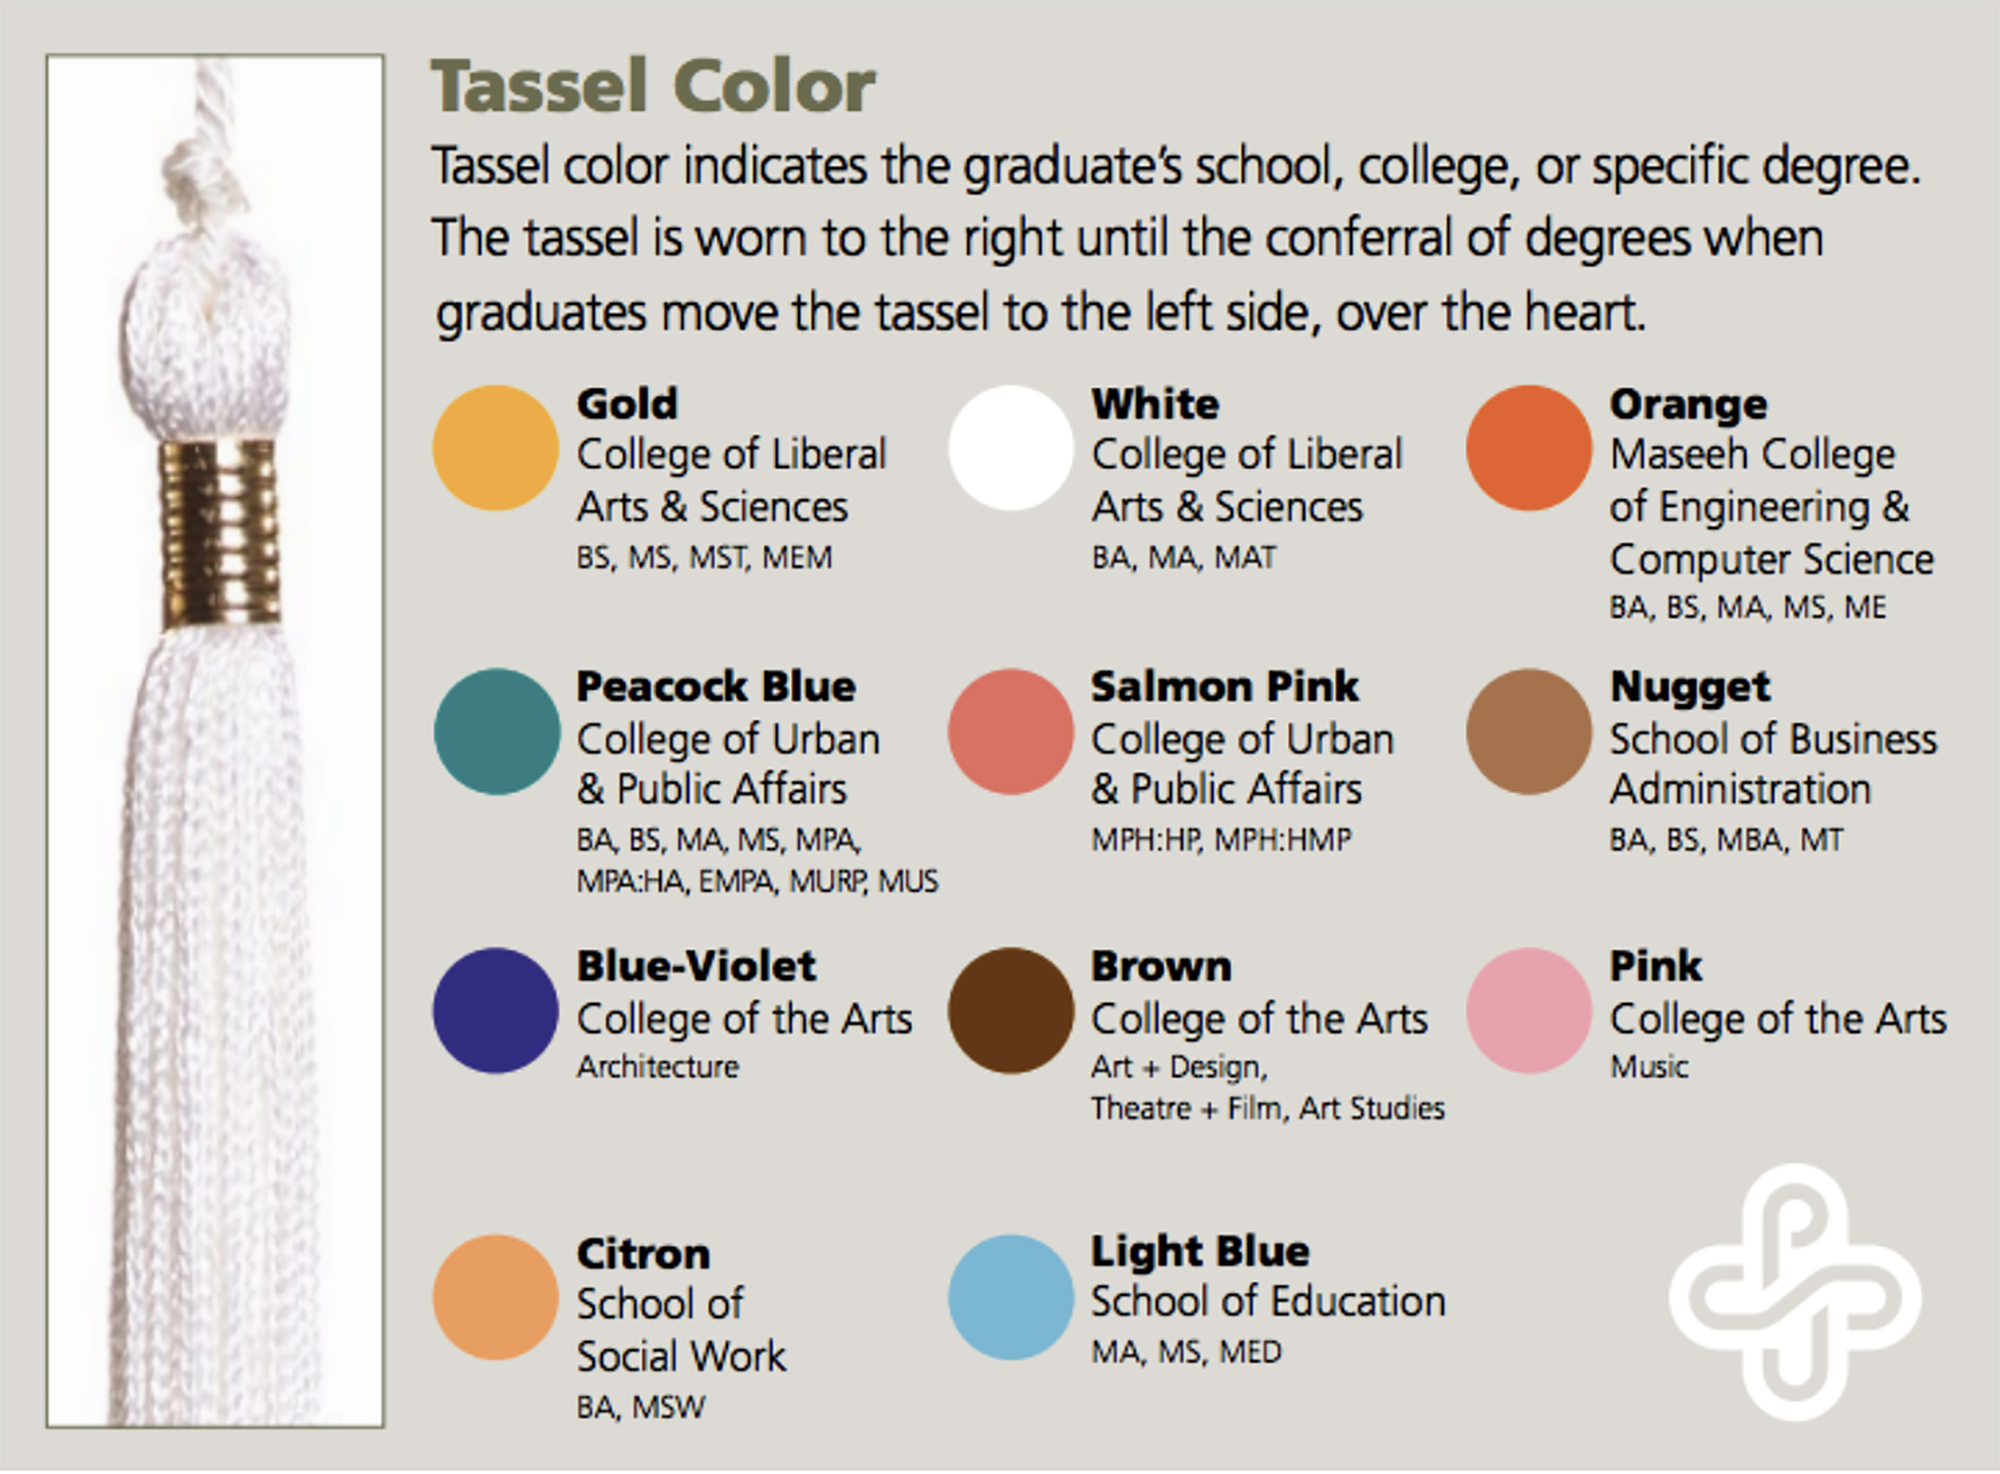 Tassel color indicates school, college or specific degree